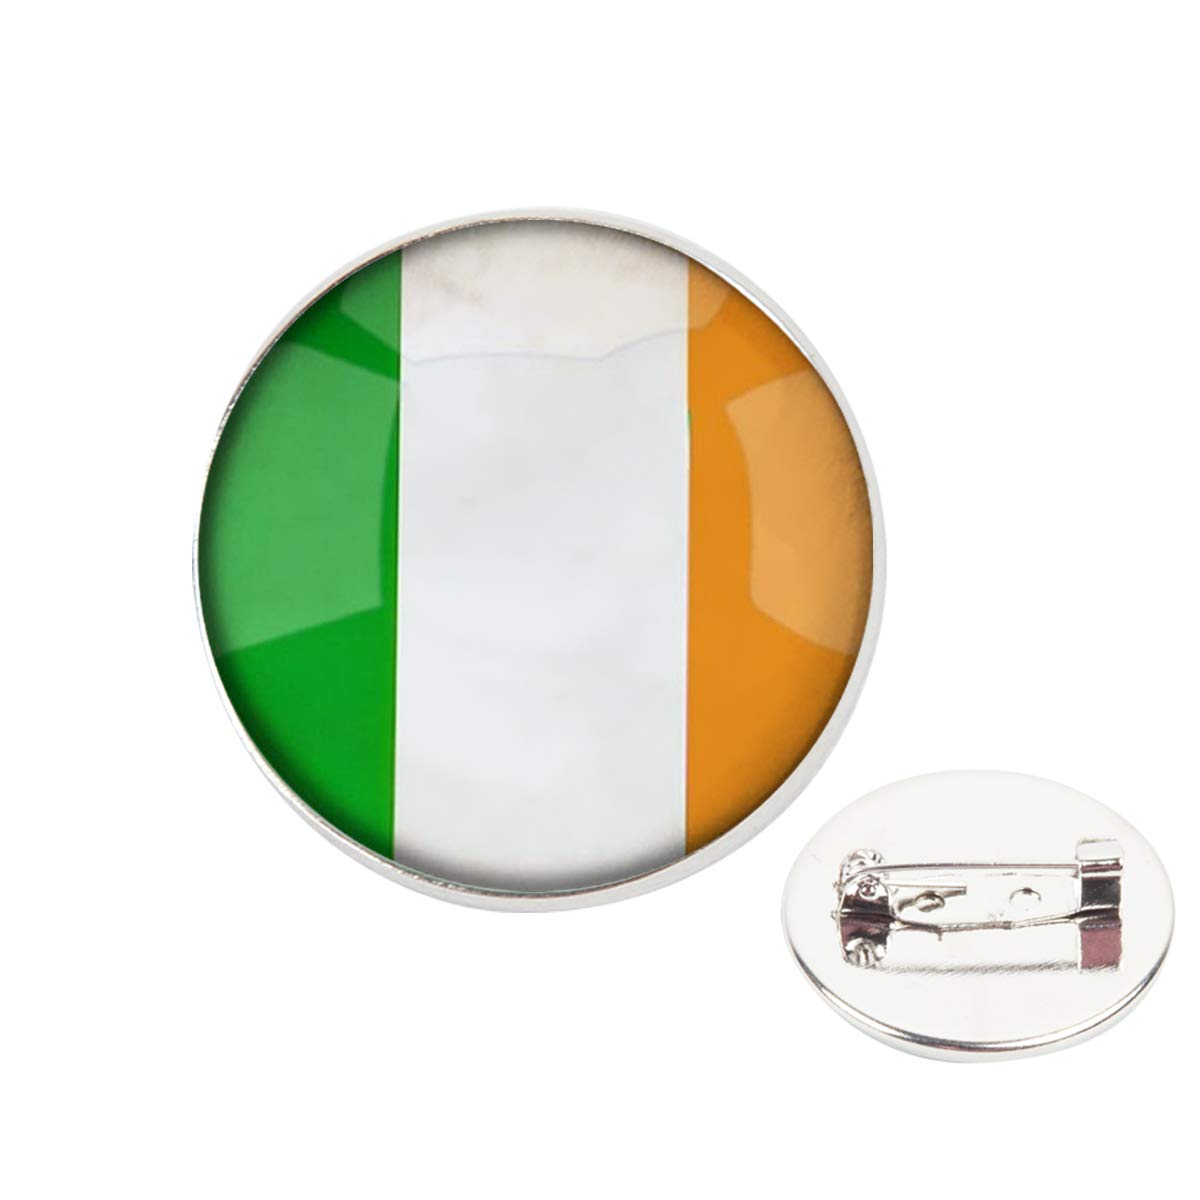 Pinback Buttons Badges Pins The Ireland National Flag Lapel Pin Brooch Clip Trendy Accessory Jacket T-Shirt Bag Hat Shoe